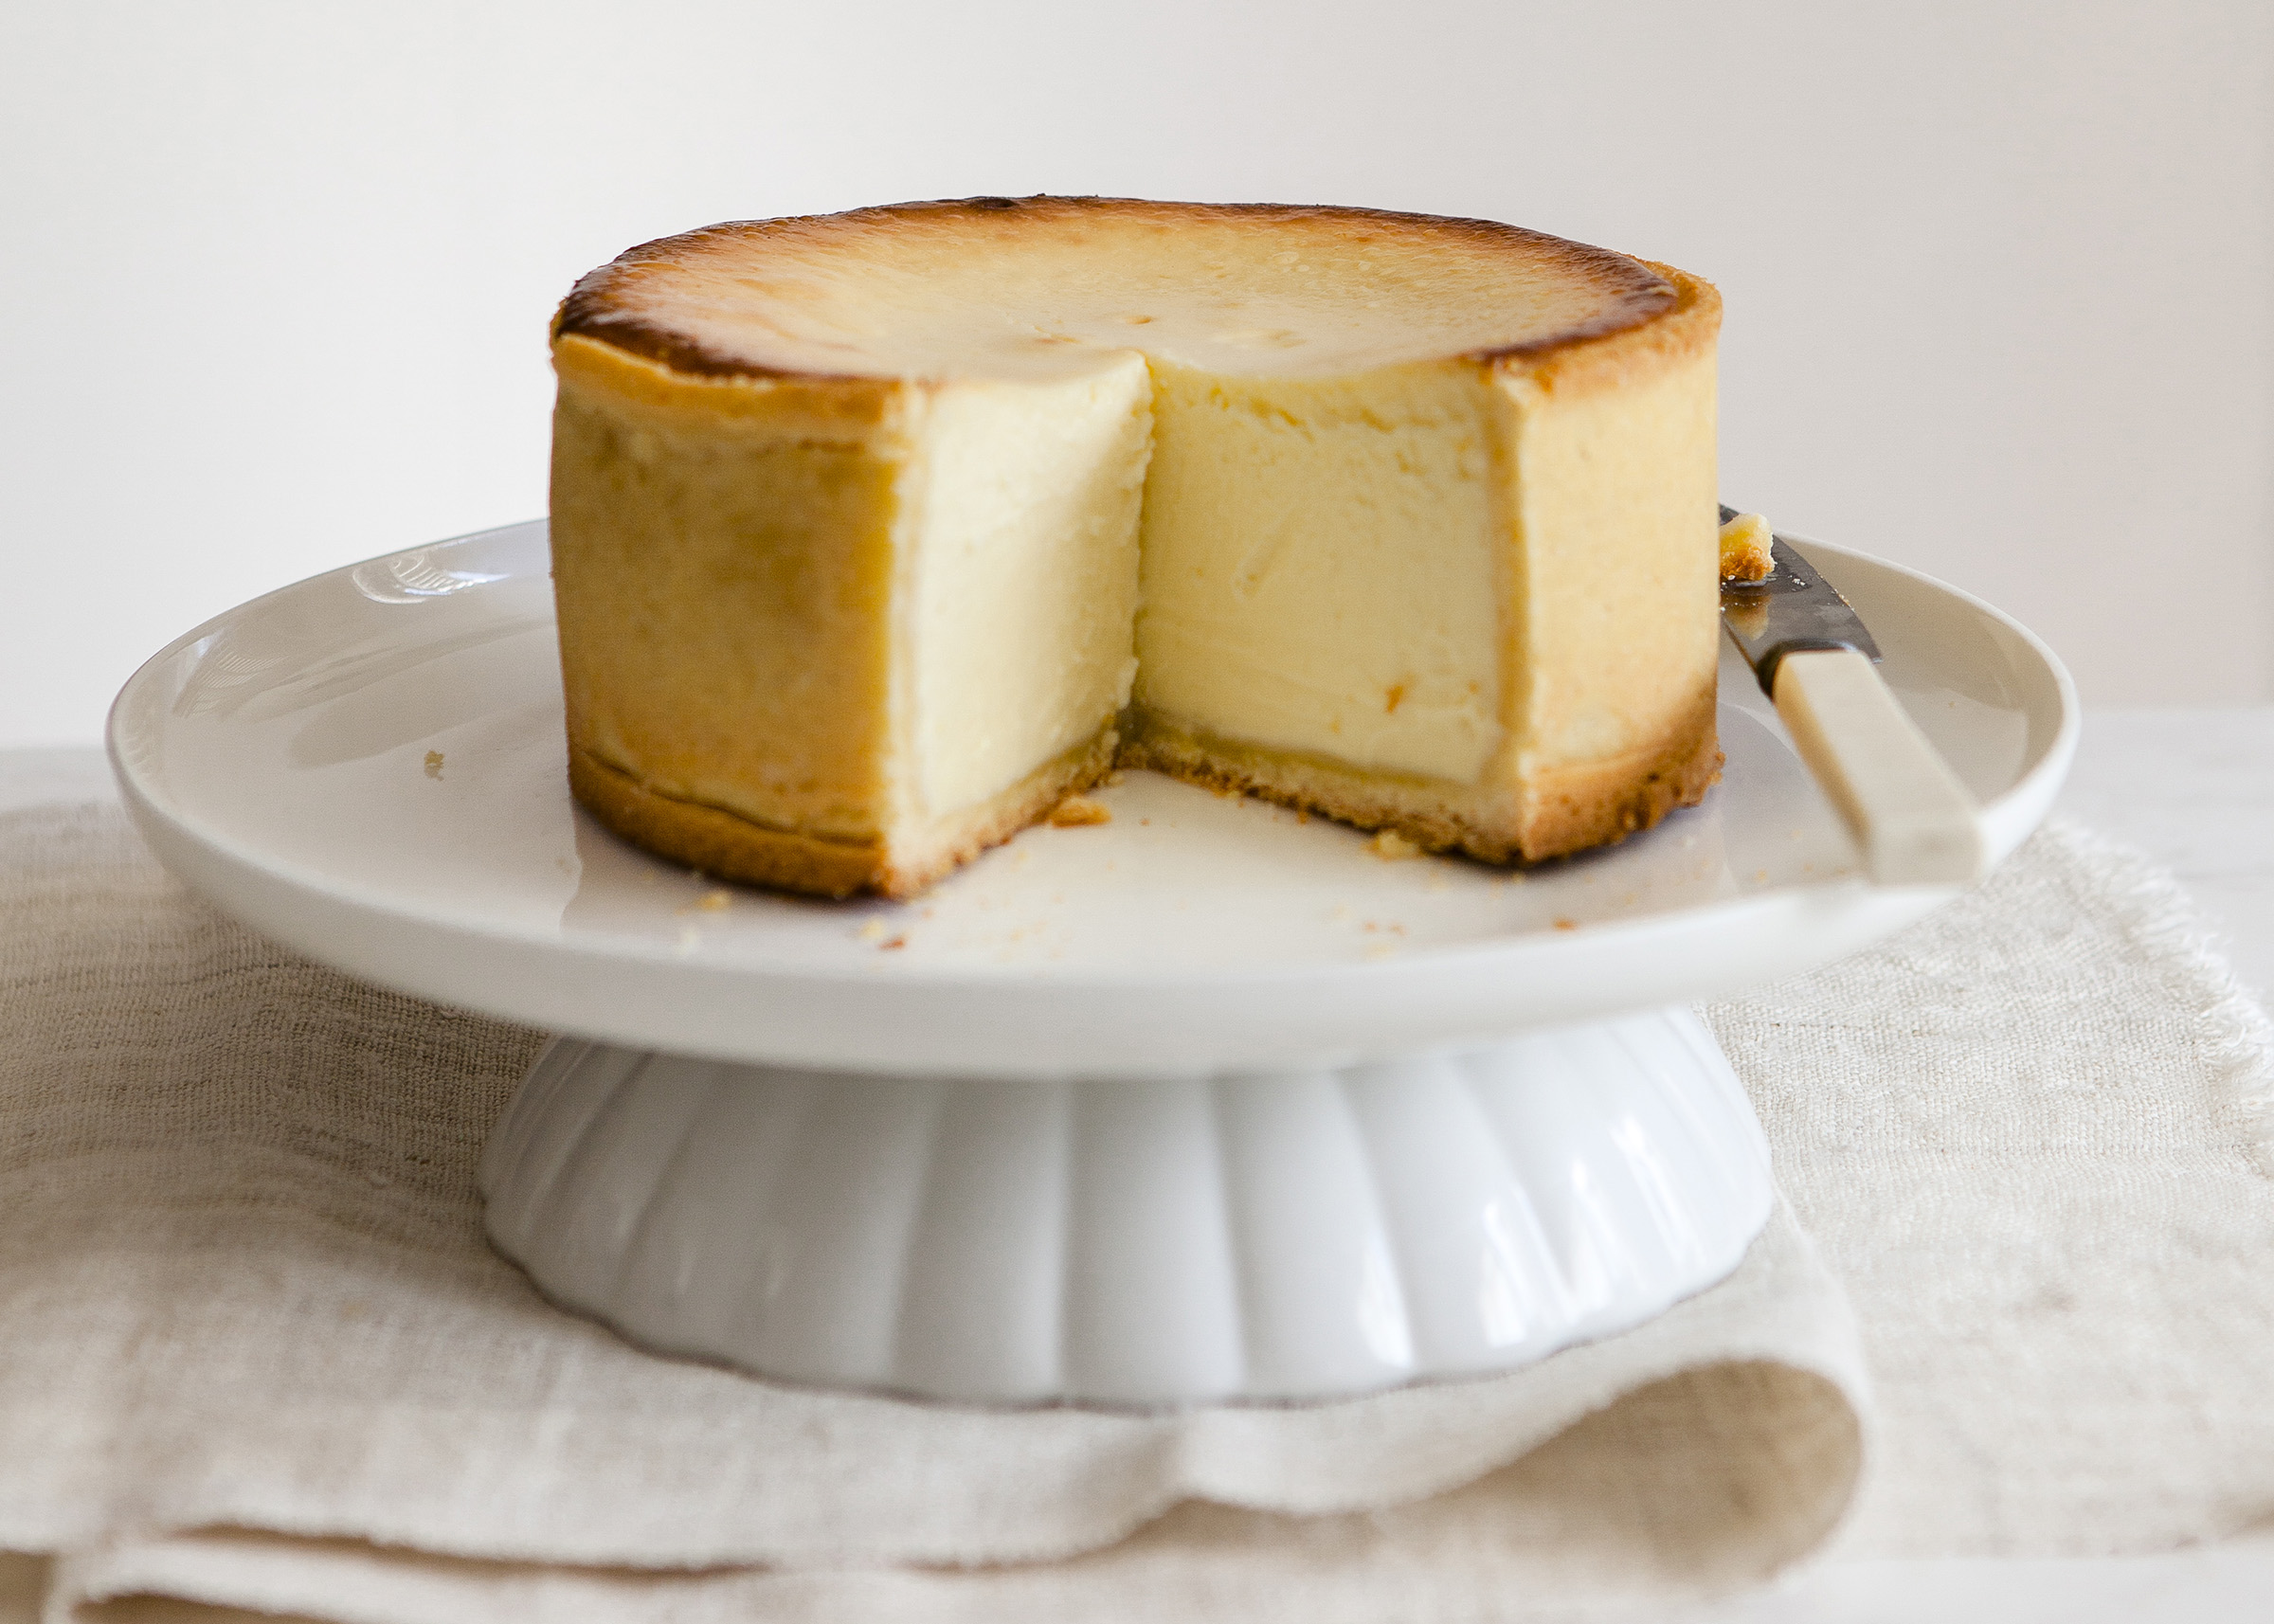 Cake Classic cheesecake tangy and sweet with a velvety smooth